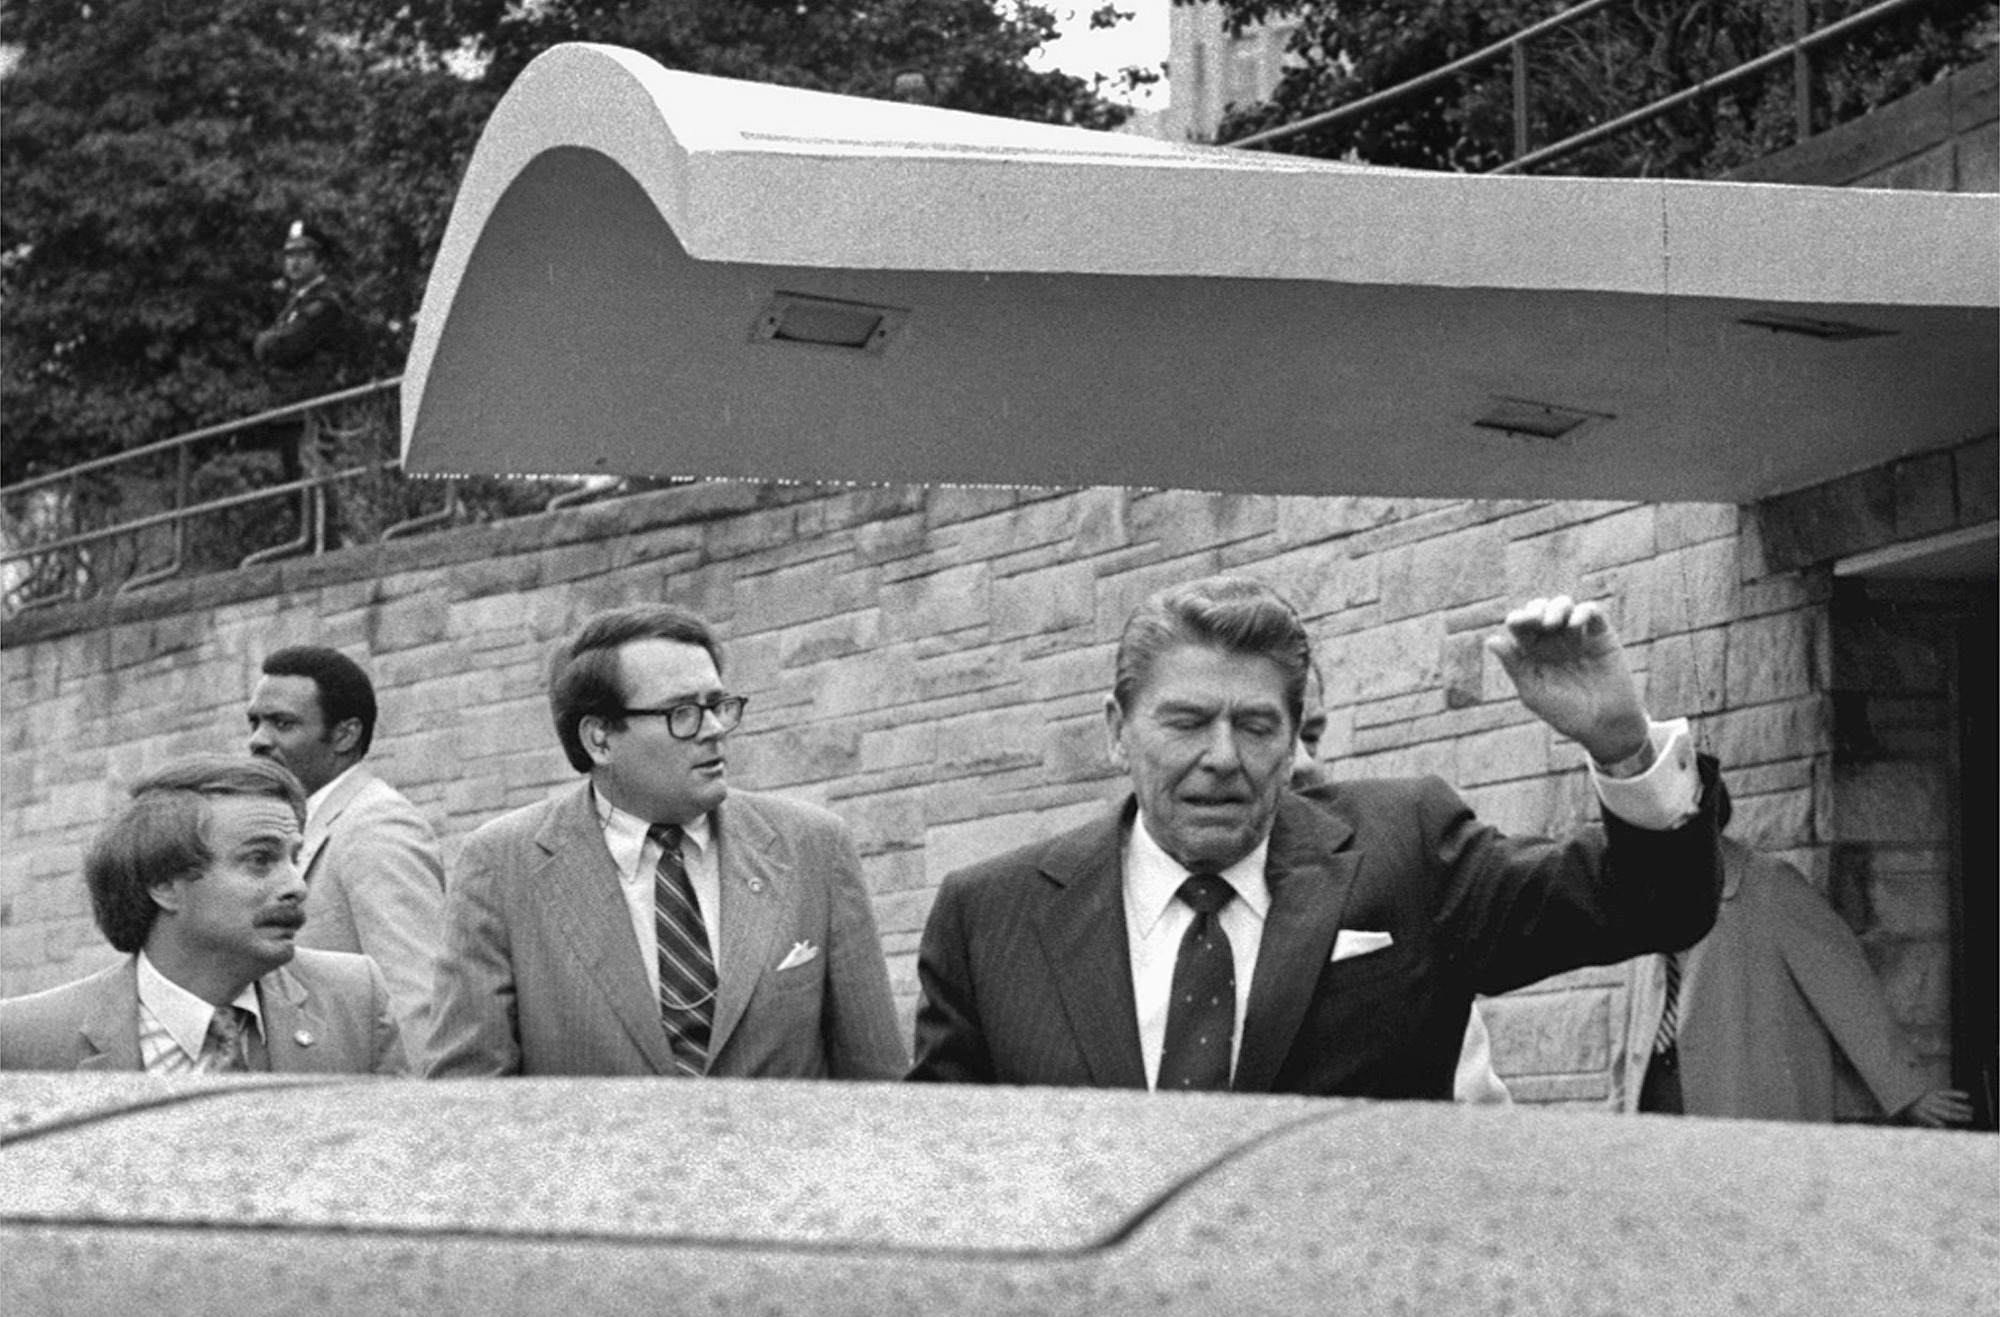 U.S. President Ronald Reagan looks to his left and holds up his left arm as a secret service agent places a hand on his shoulder and pushes the President into his limousine after he was shot leaving a Washington hotel, Monday, March 30, 1981. (AP Photo/Ron Edmonds)